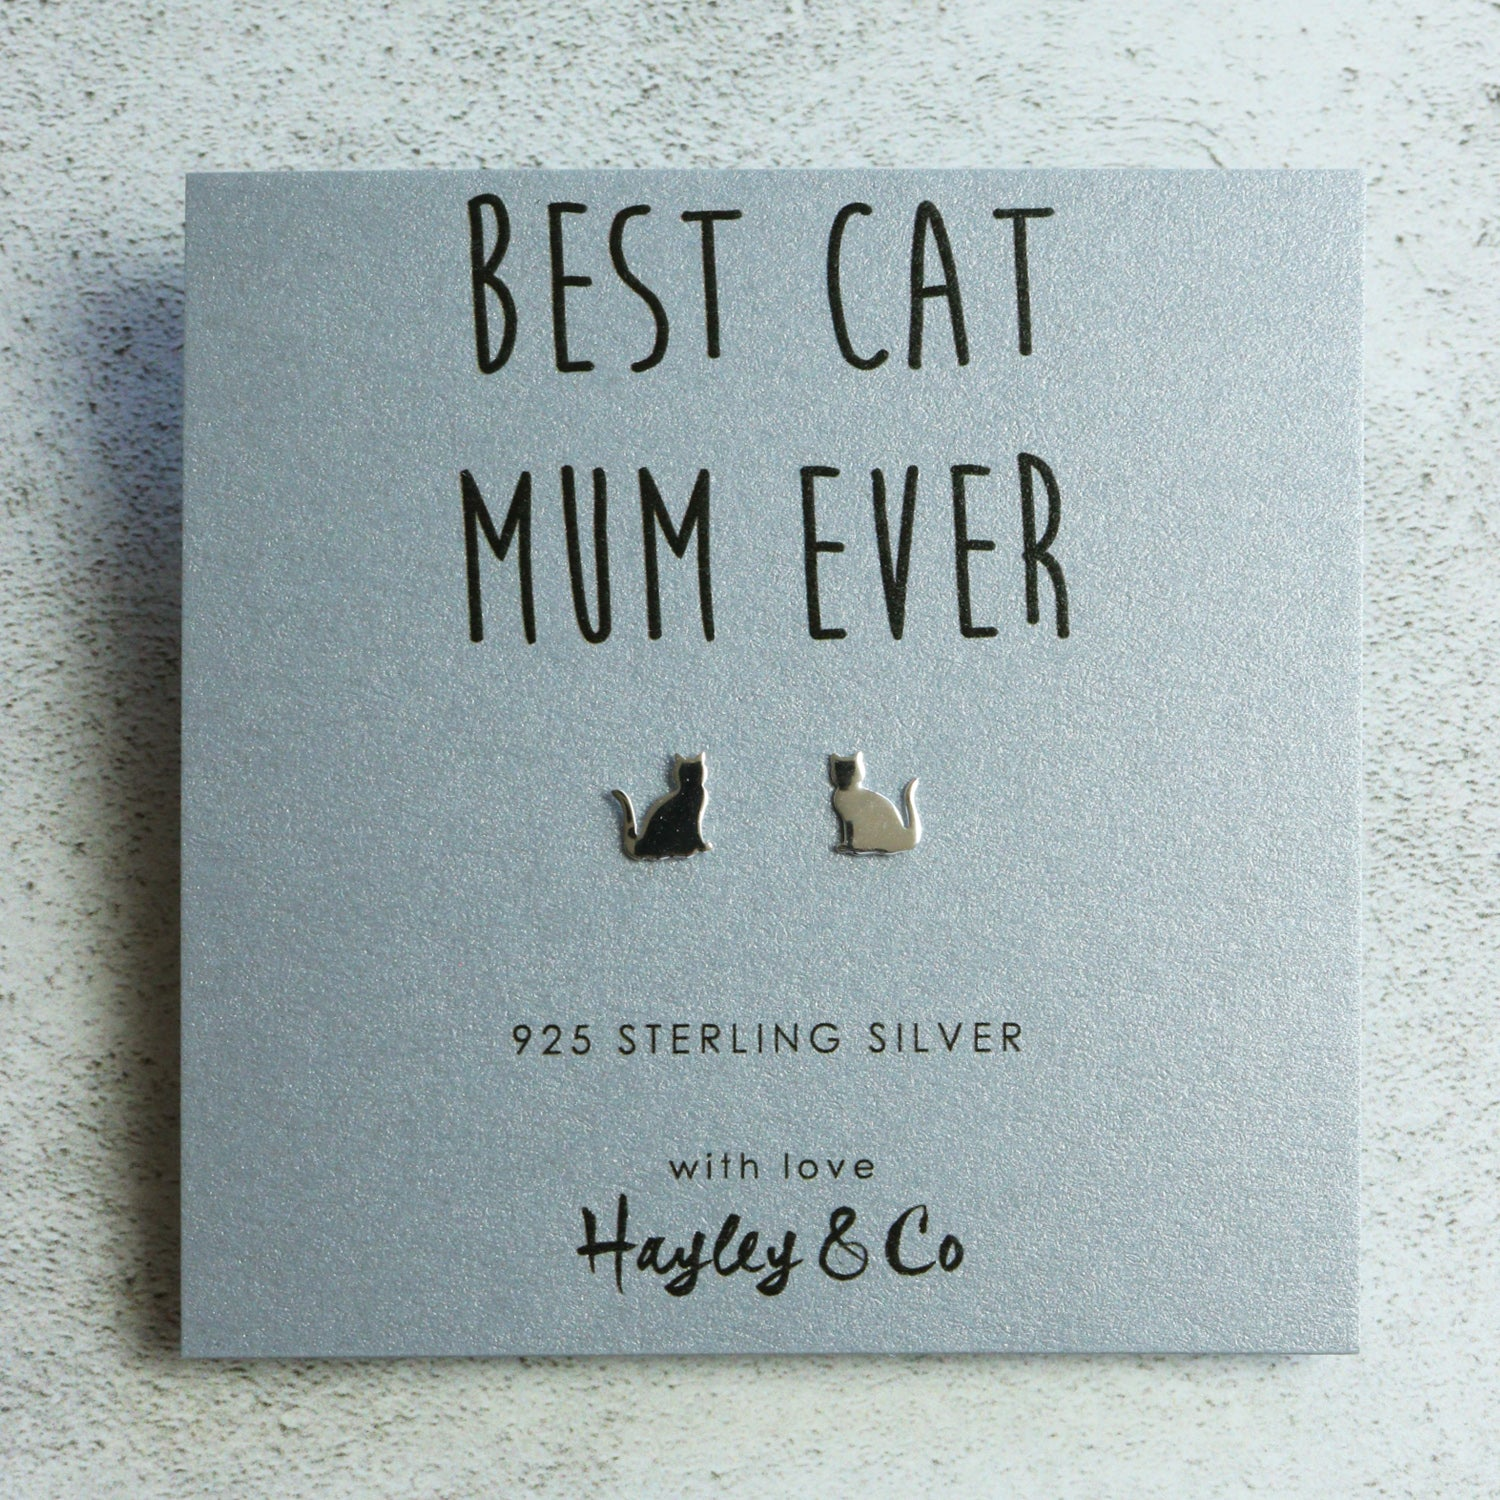 Best Cat Mum Silver Silhouette Earrings